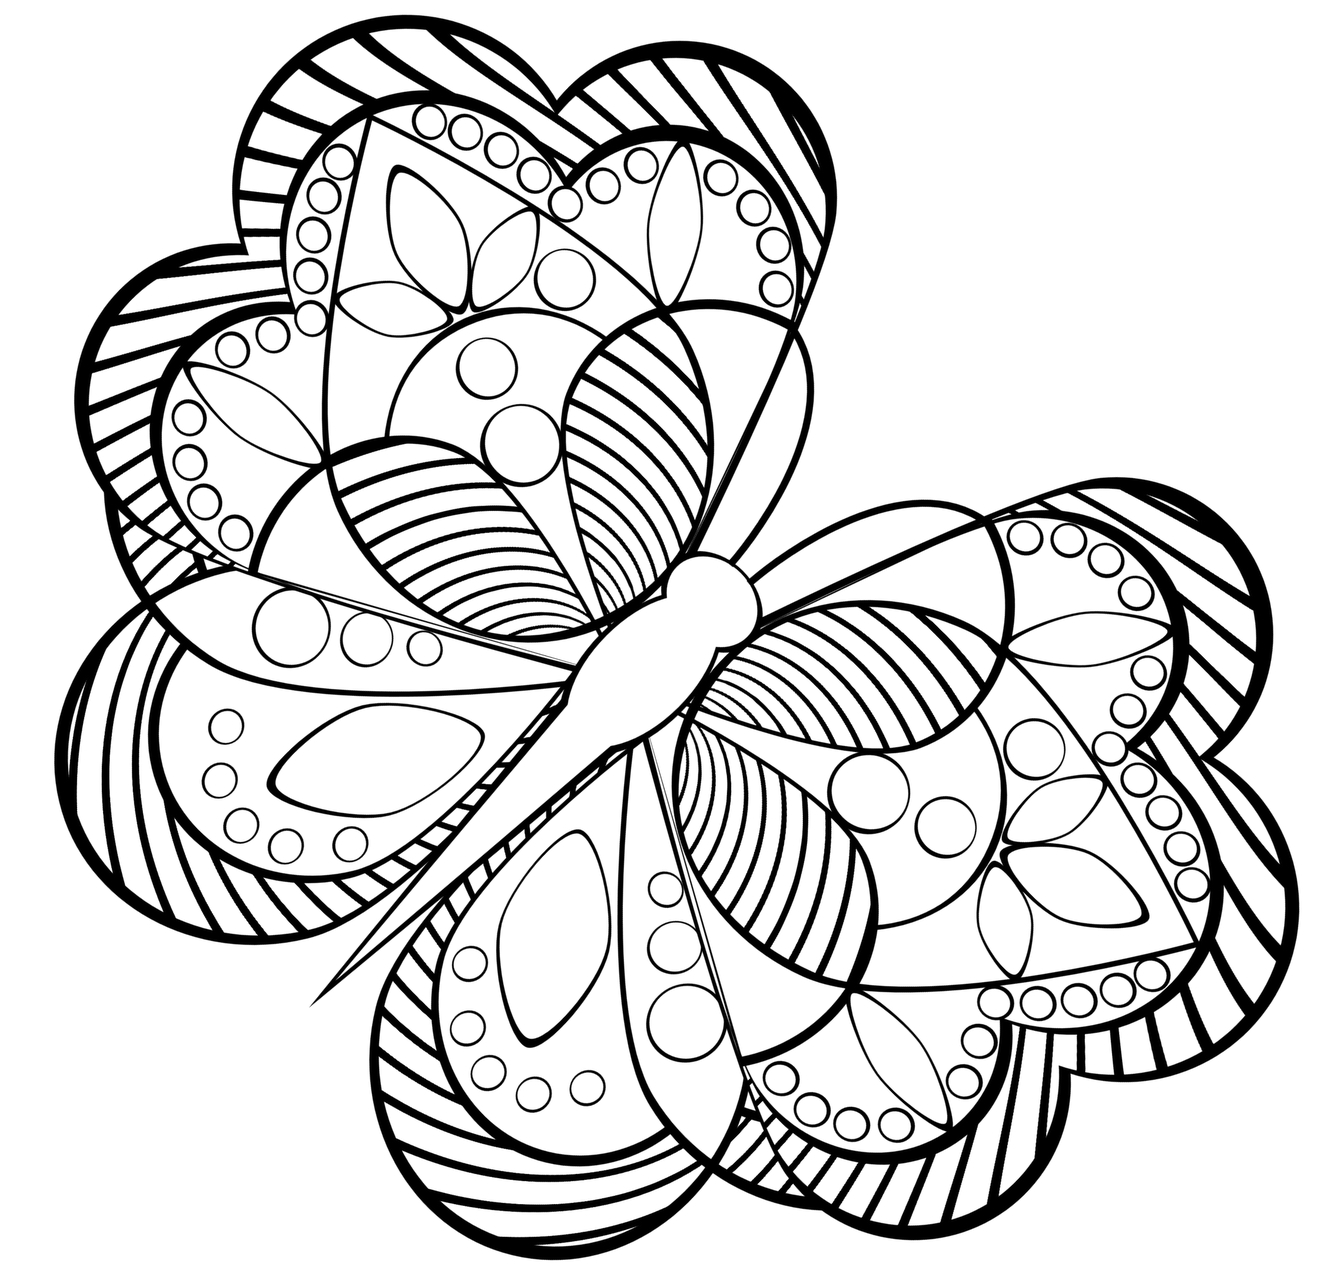 therapy coloring pages - Coloring Pics For Kids